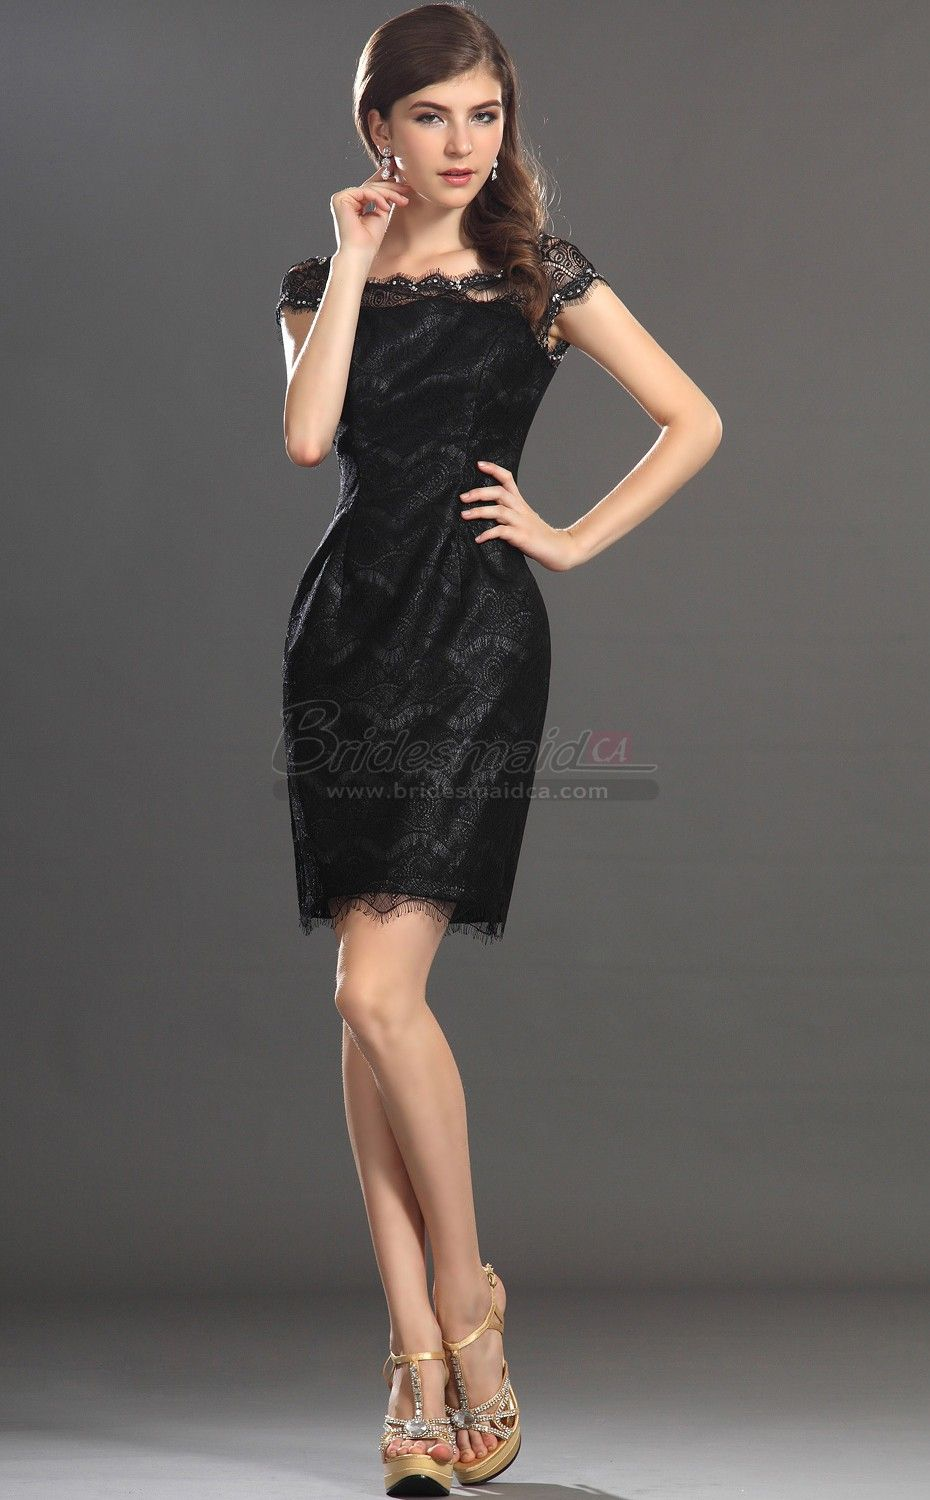 Bridesmaiddresses Black Lace Off The Shoulder Short Sheath Vintage Bridesmaid Dress Bd Ca358